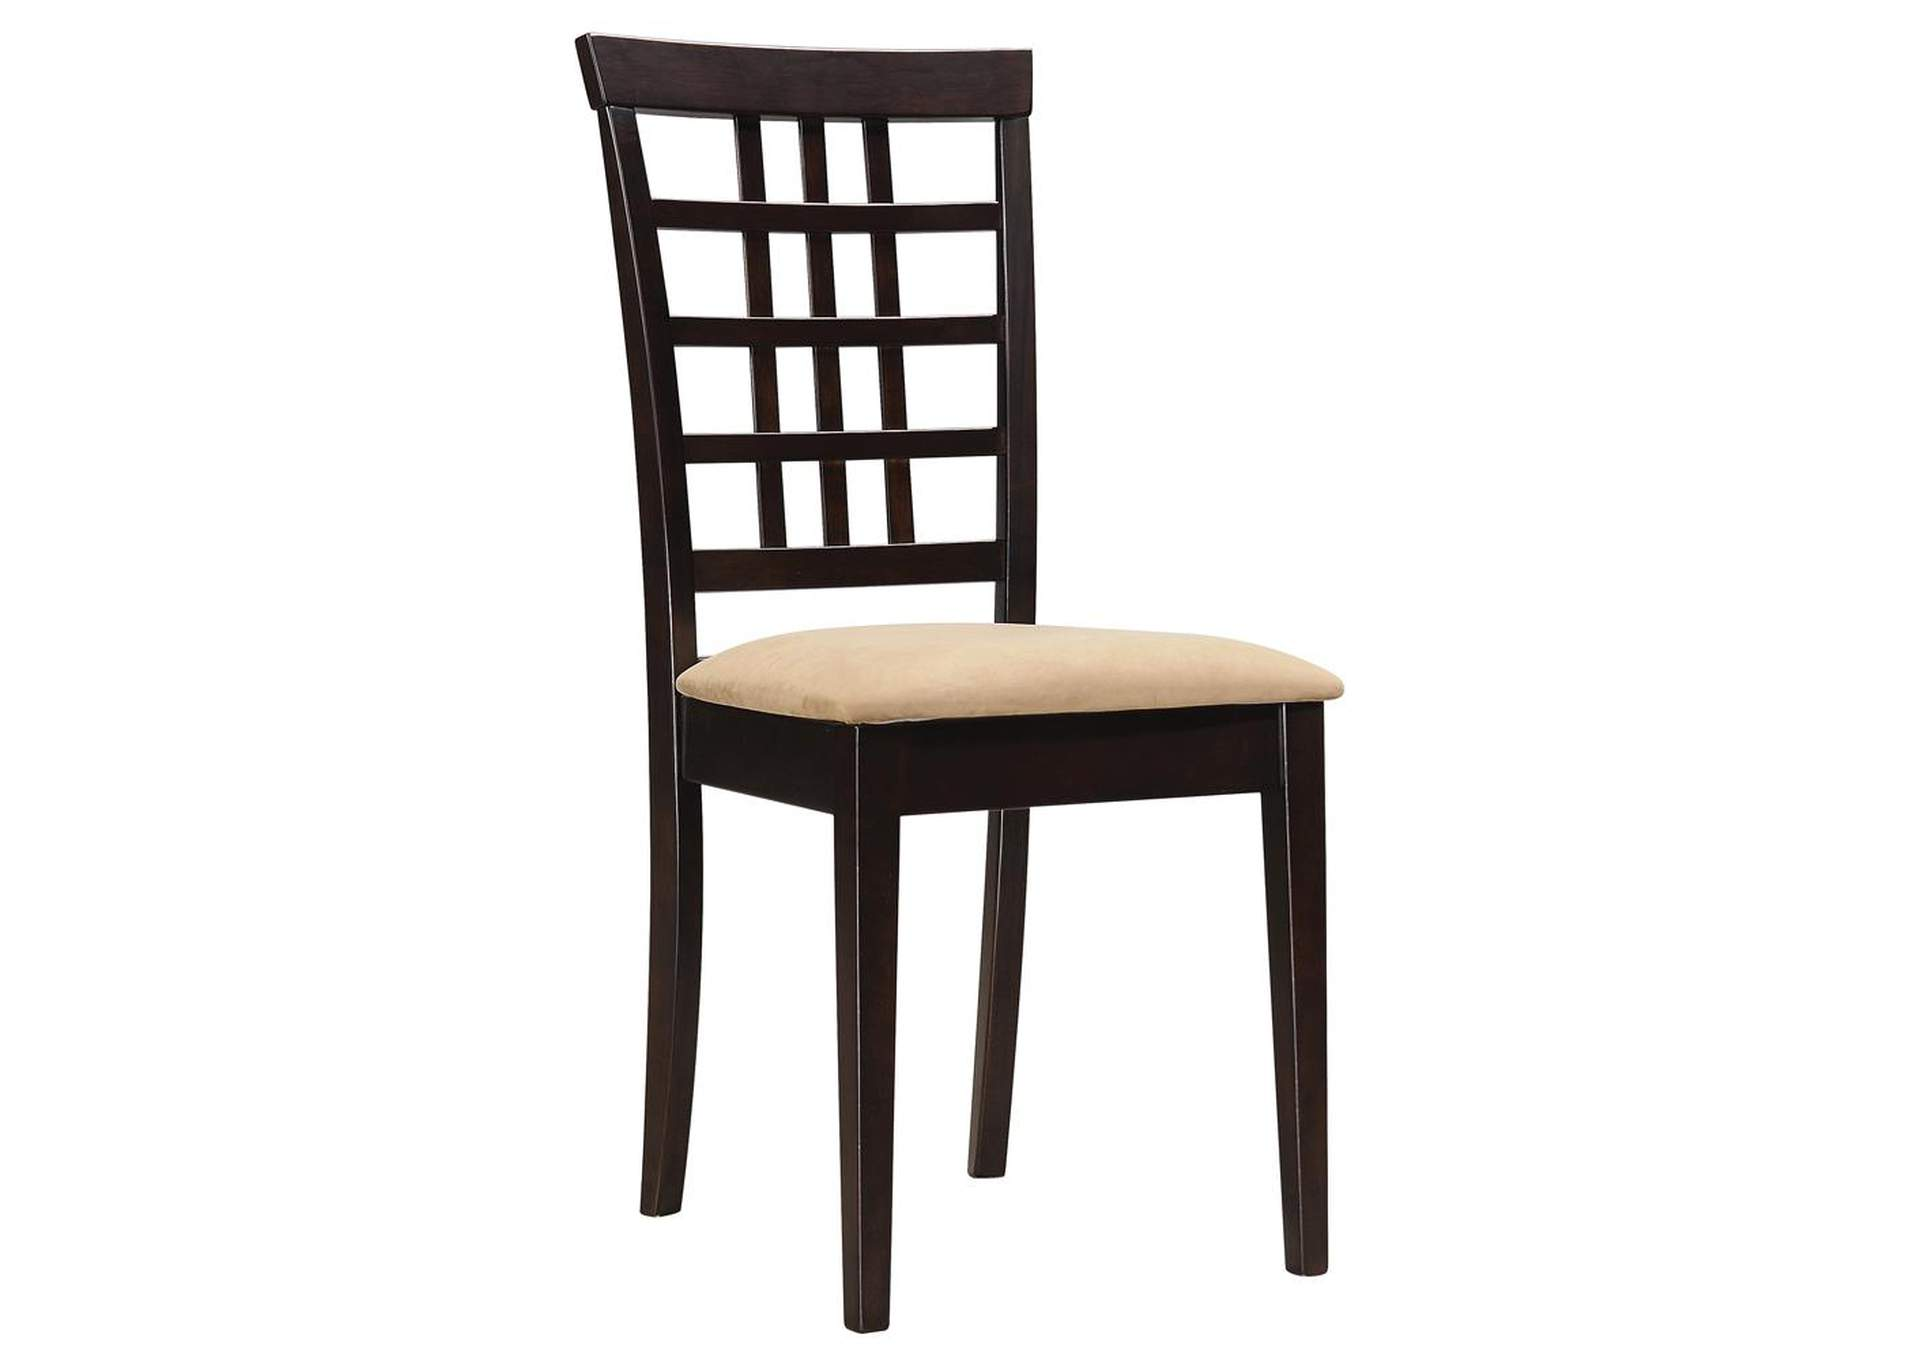 Kelso Lattice Back Dining Chairs Cappuccino (Set of 2),Coaster Furniture